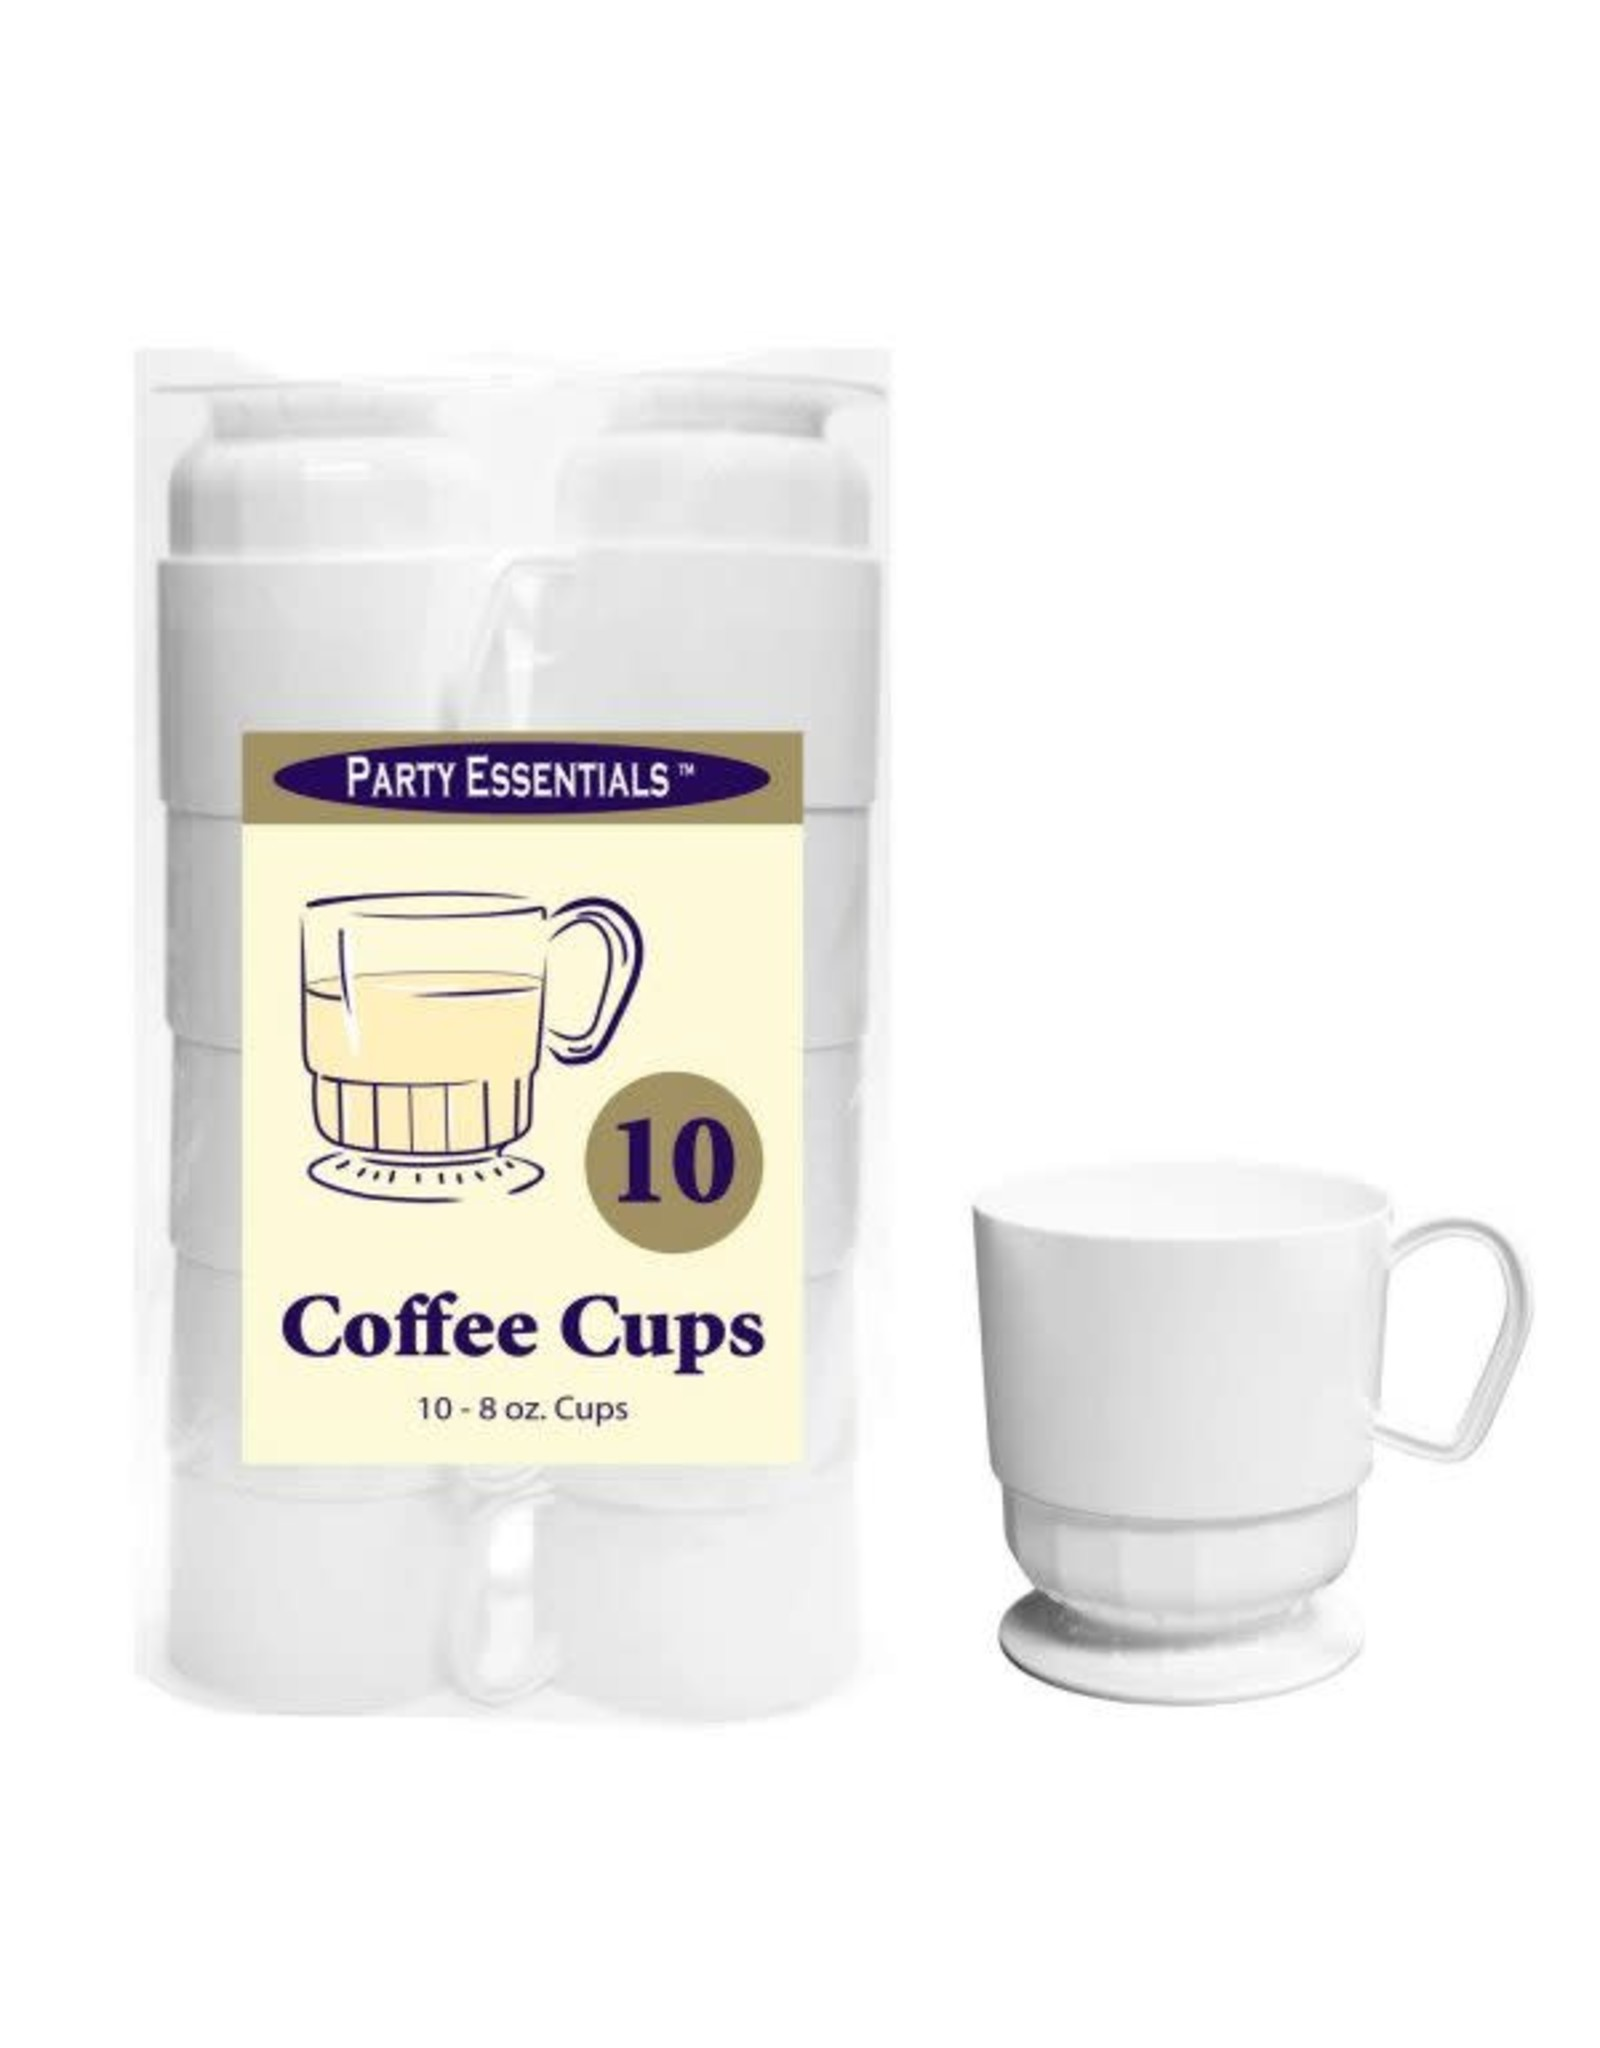 Party Essentials 8 oz. Deluxe Coffee Cups - White 10 Ct.